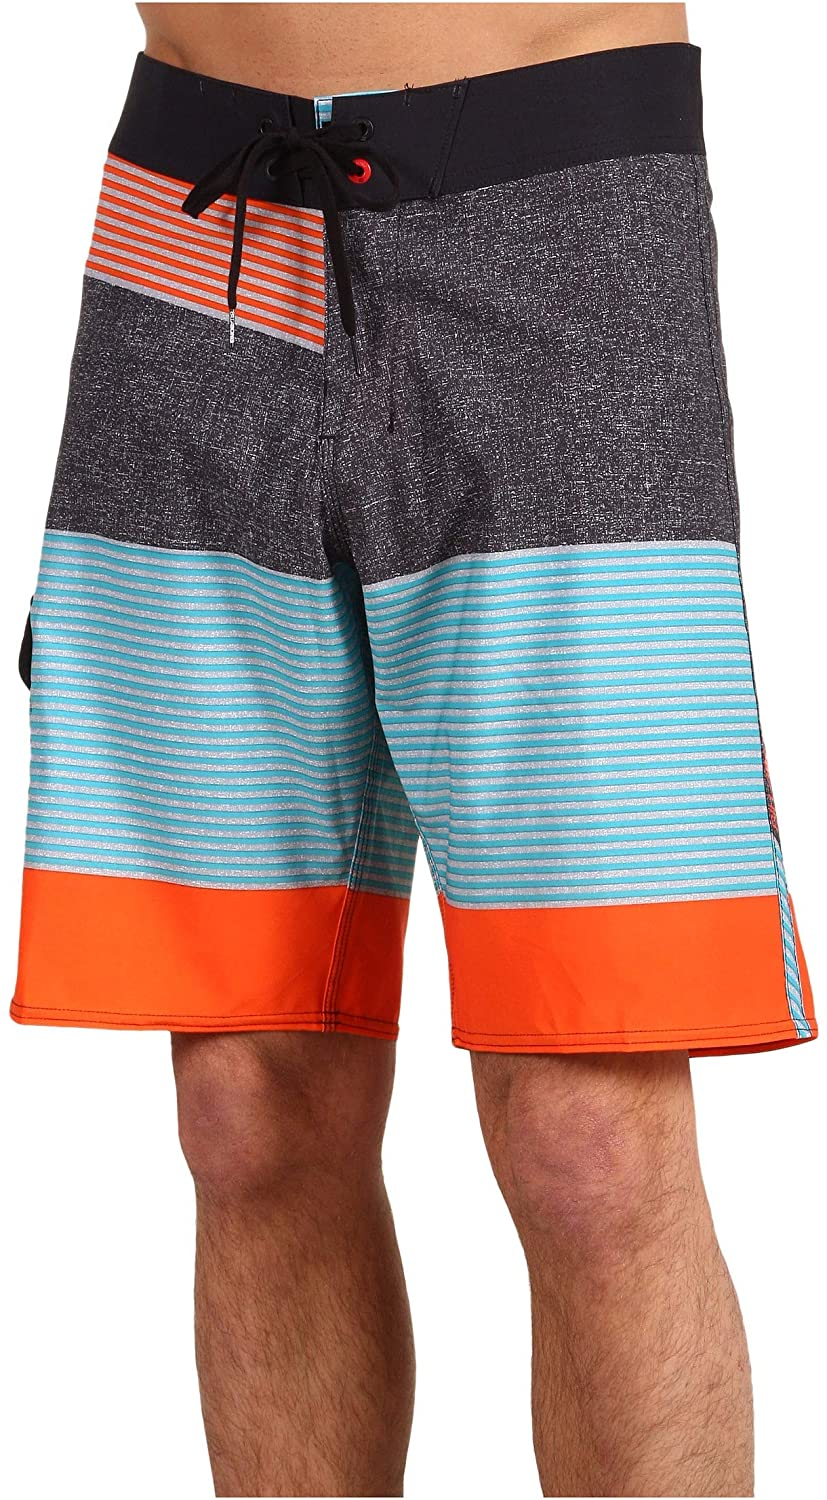 Billabong Men's Fifty 50 Boardshorts, (CHR) Charcoal, Size 30